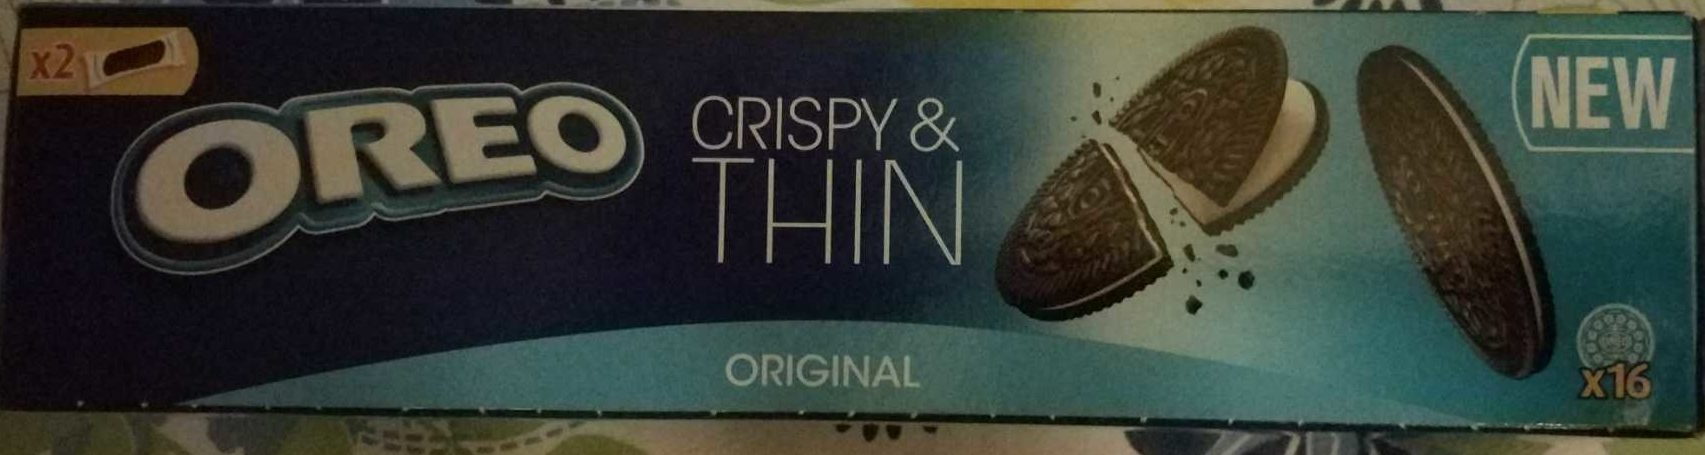 Biscuits Oreo Crispy and Thin - Product